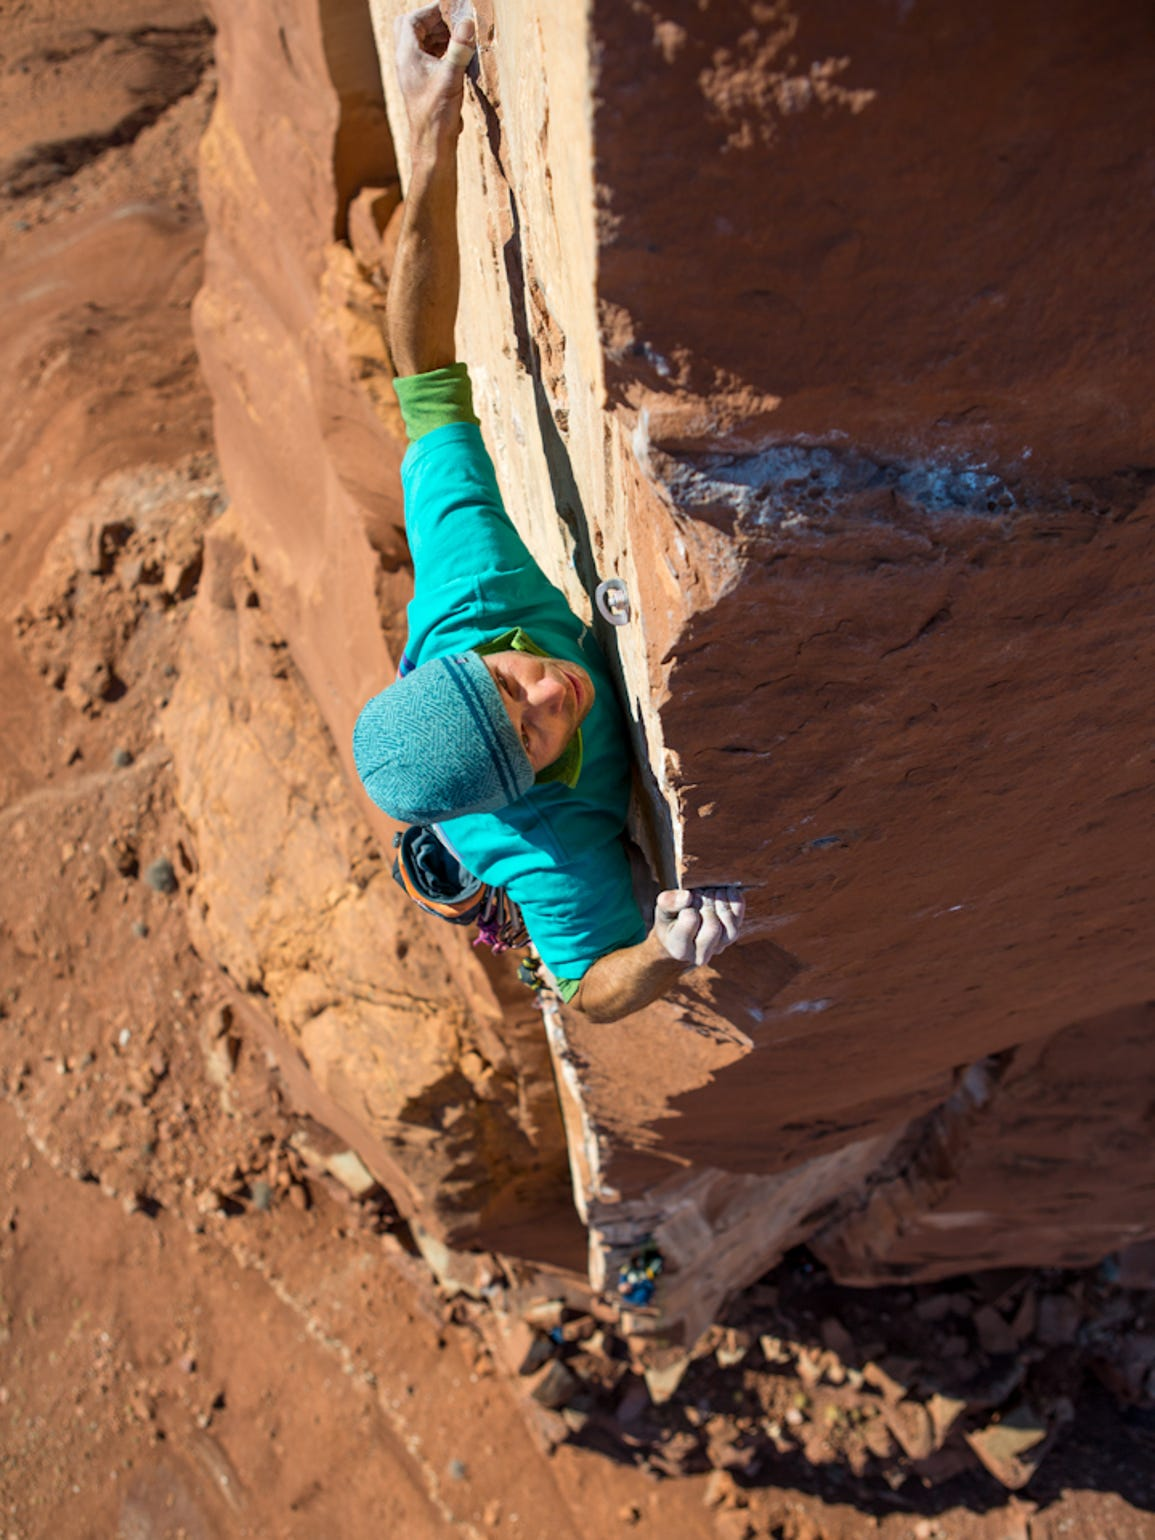 Chris Kalous & Sam Lightner Jr, The Ivory Tower 5.13b,